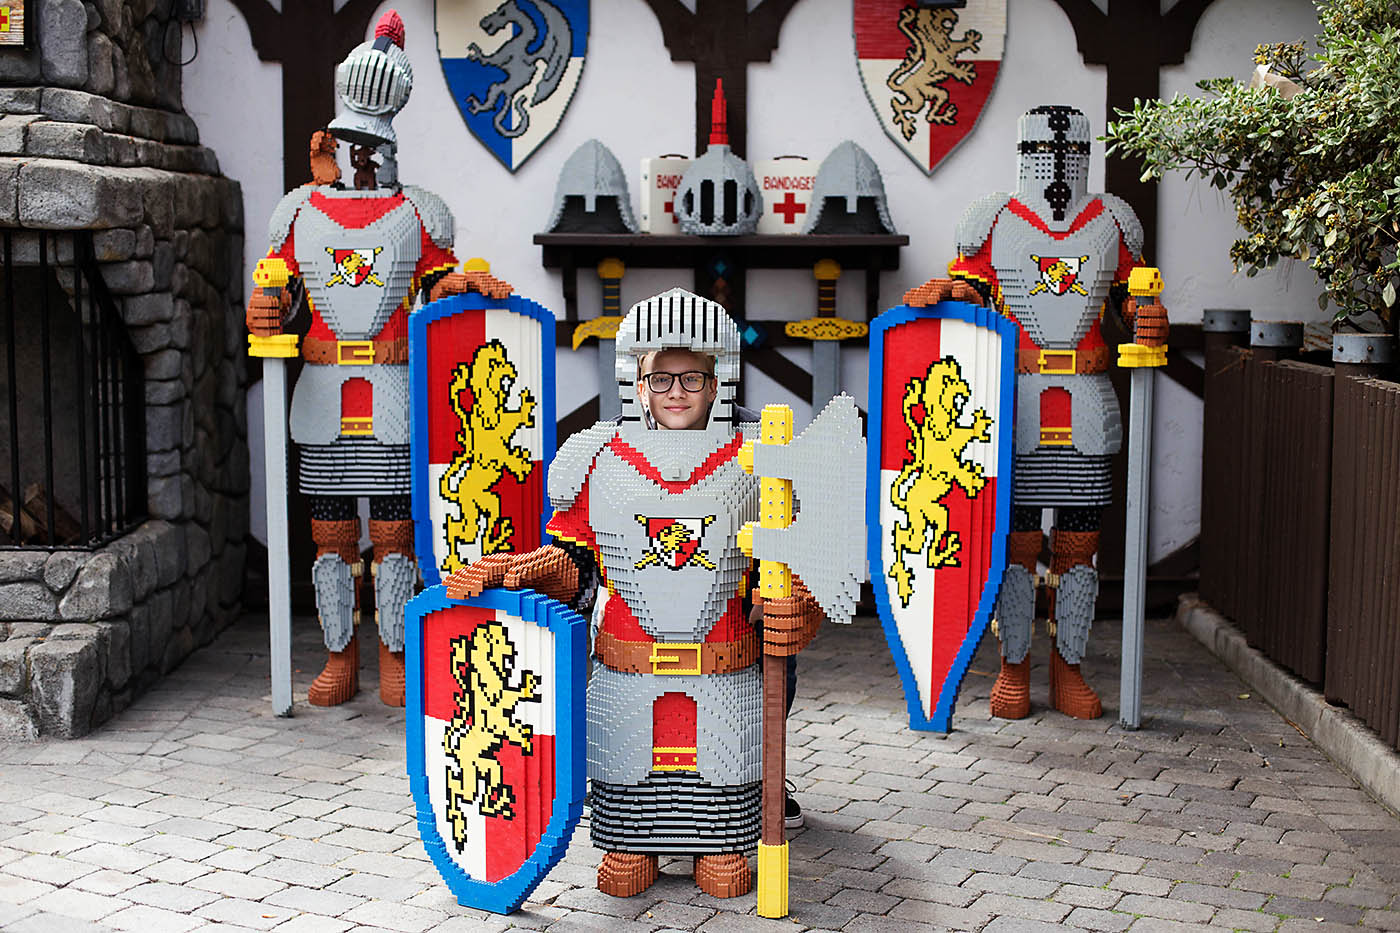 Great reasons to take older kids to the new Legoland Castle Hotel in Carlsbad, CA!